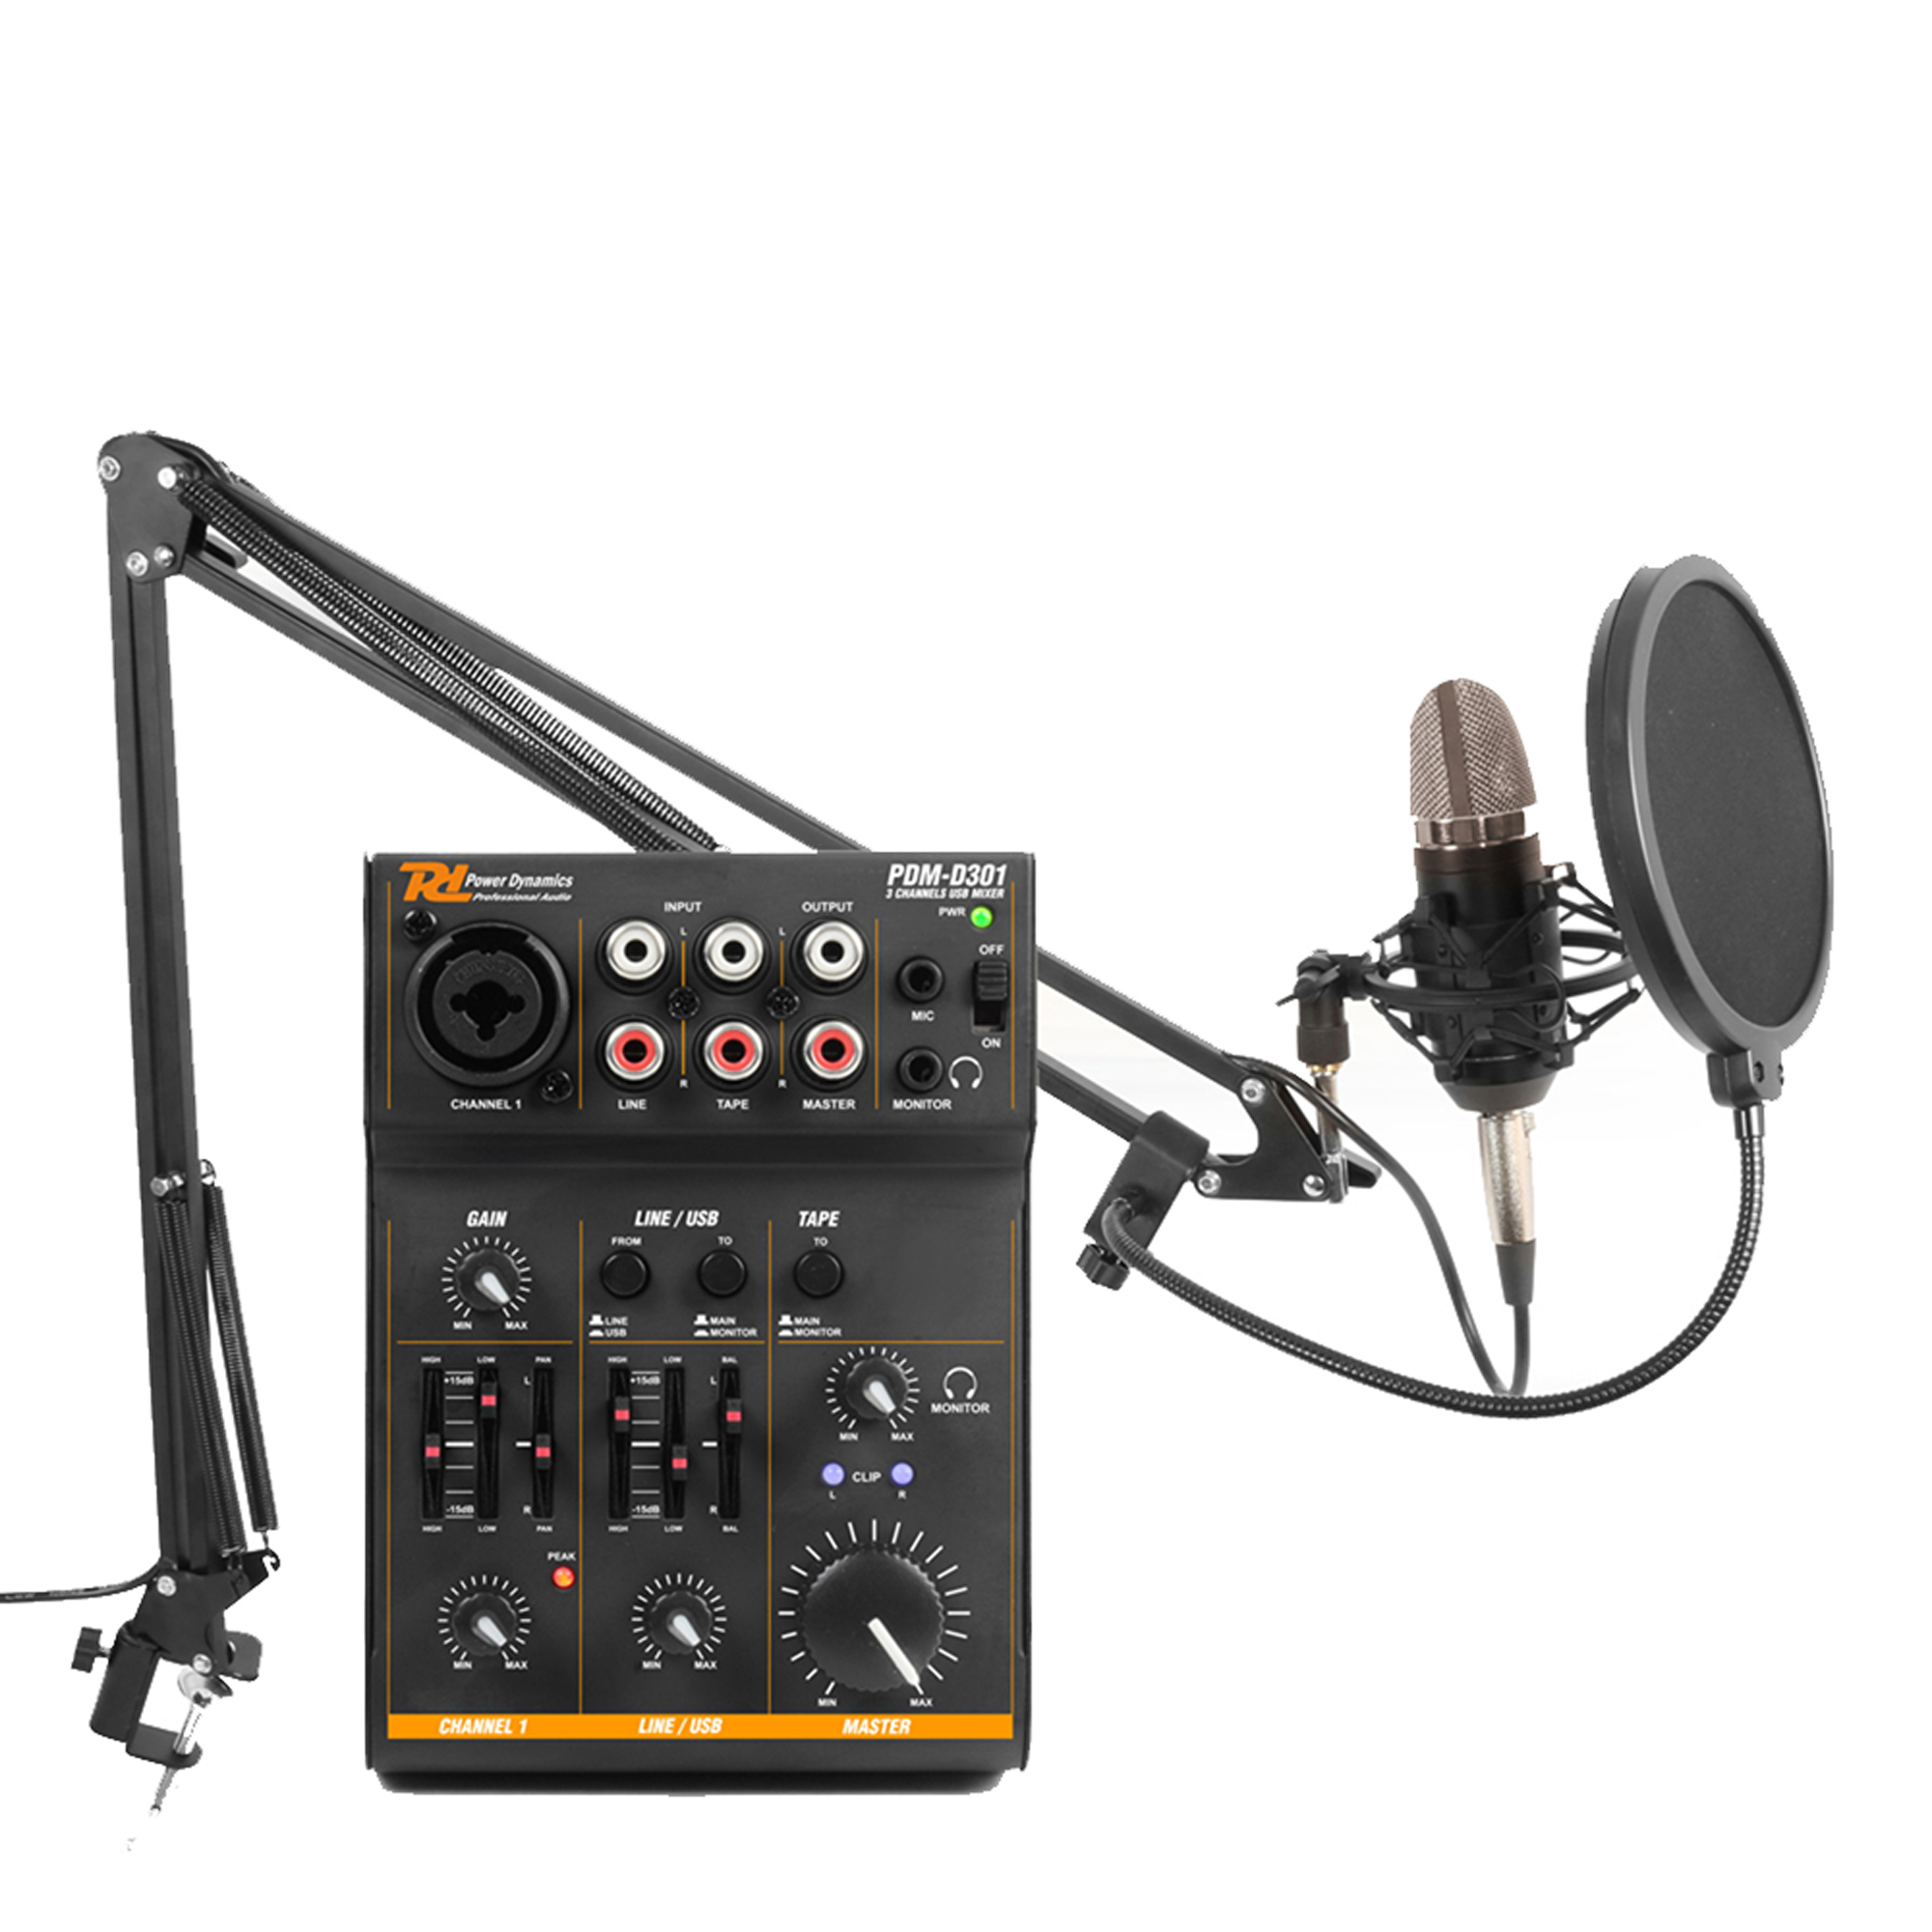 podcast desktop studio microphone and 3 channel usb live mixer recording set. Black Bedroom Furniture Sets. Home Design Ideas